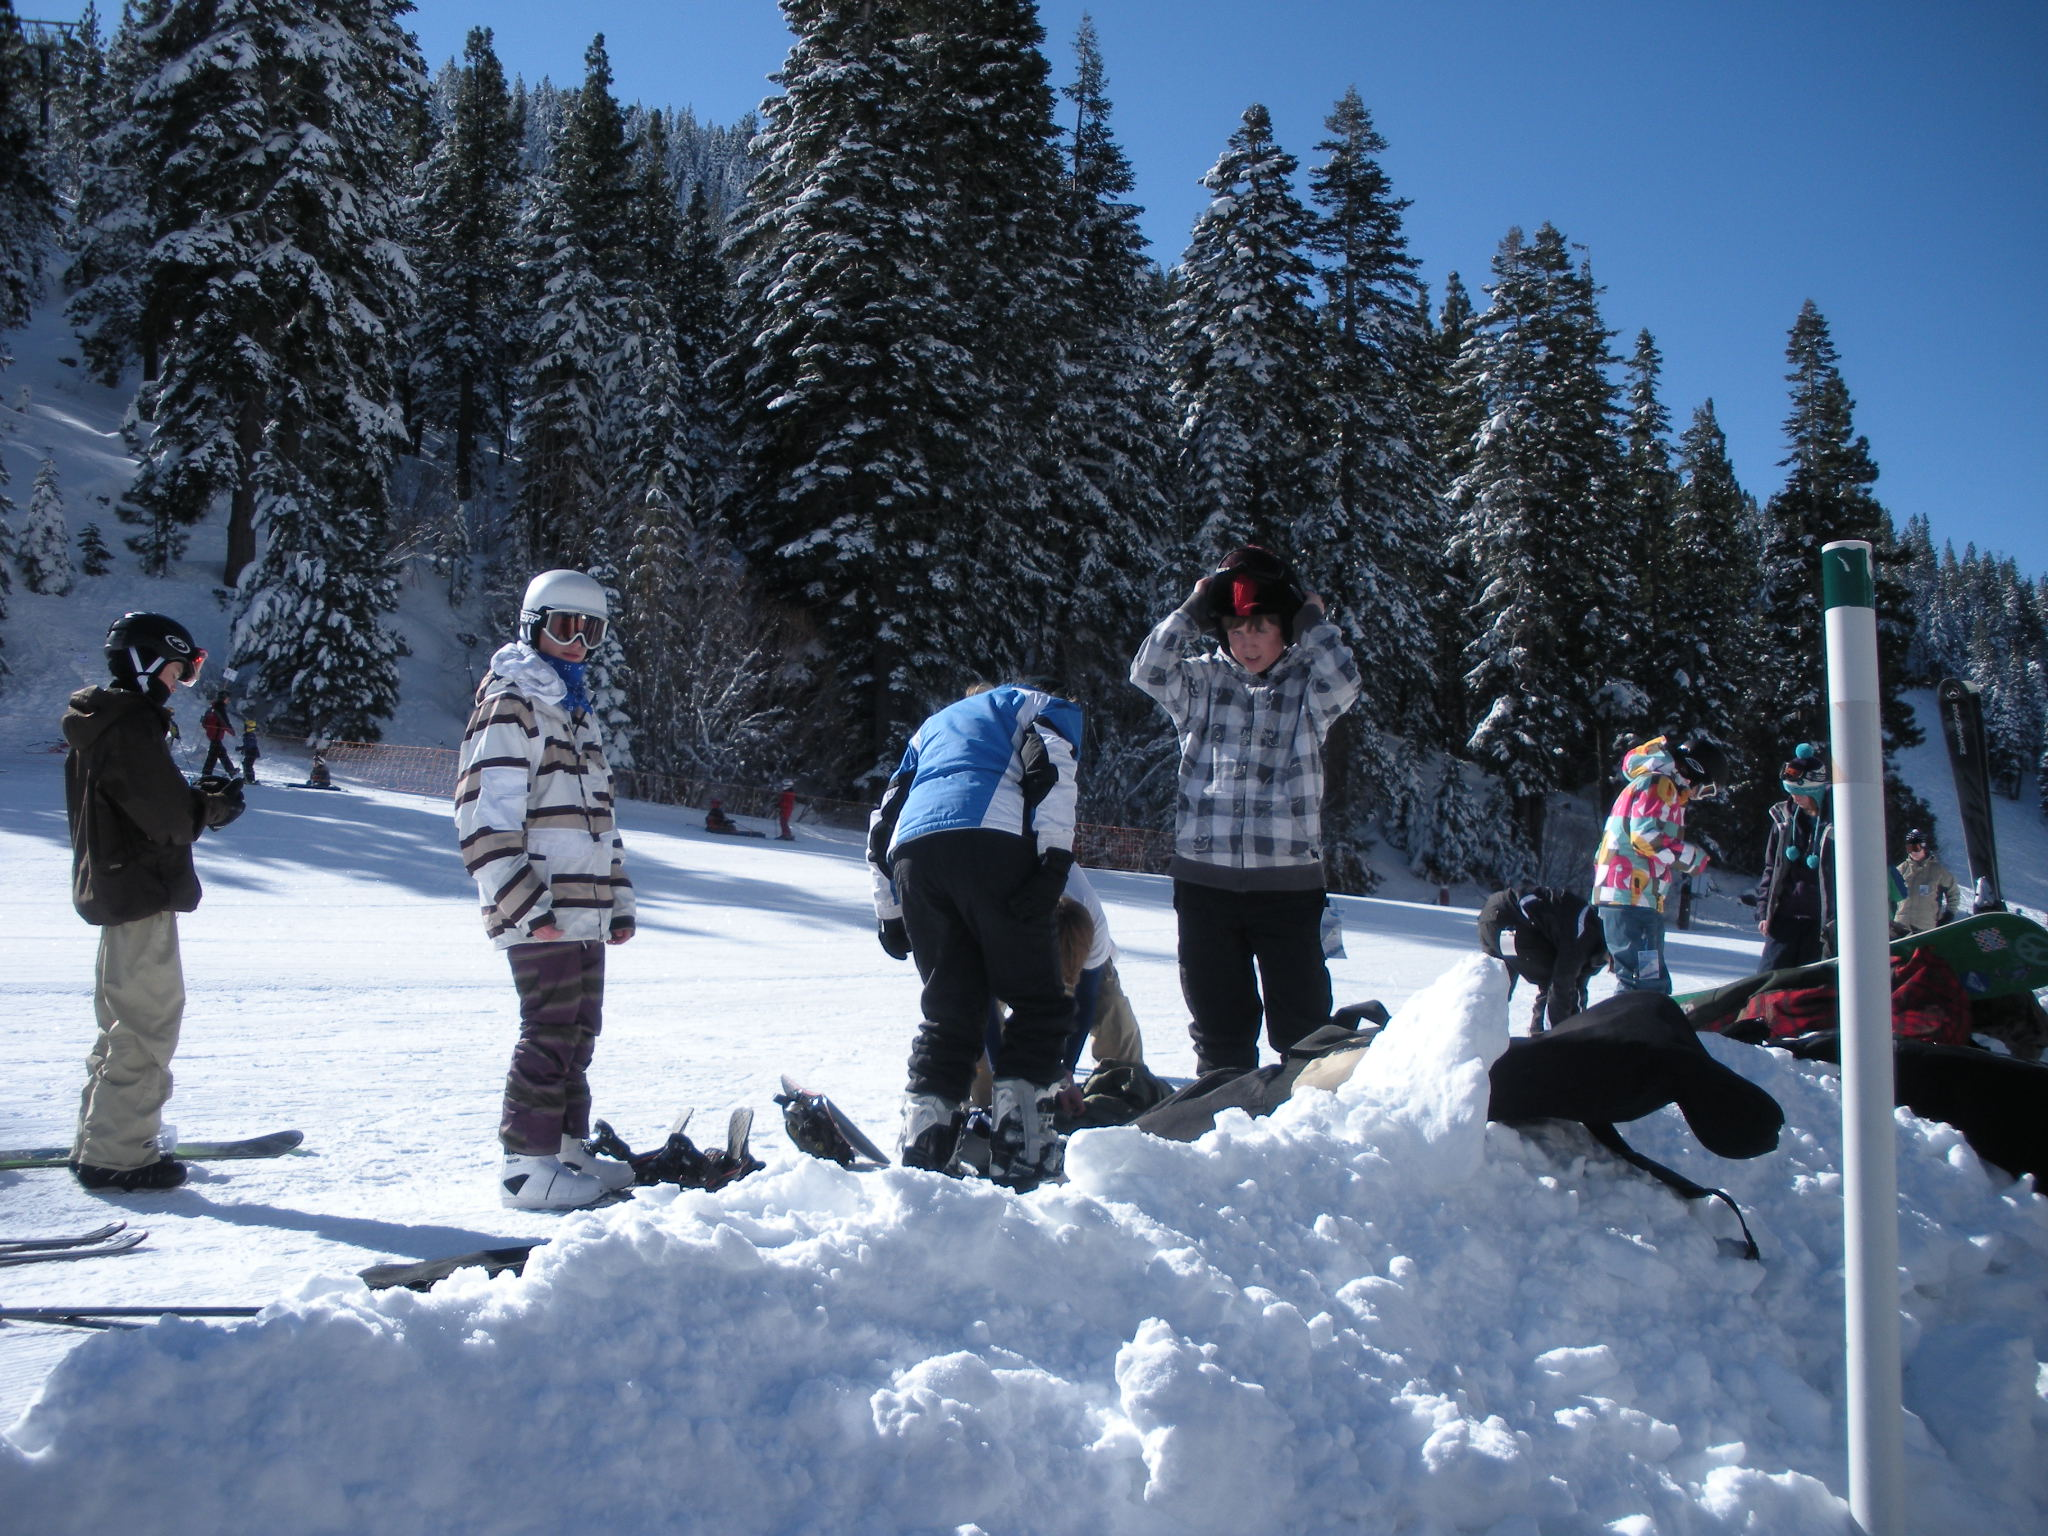 Kids prepare for snowboarding class